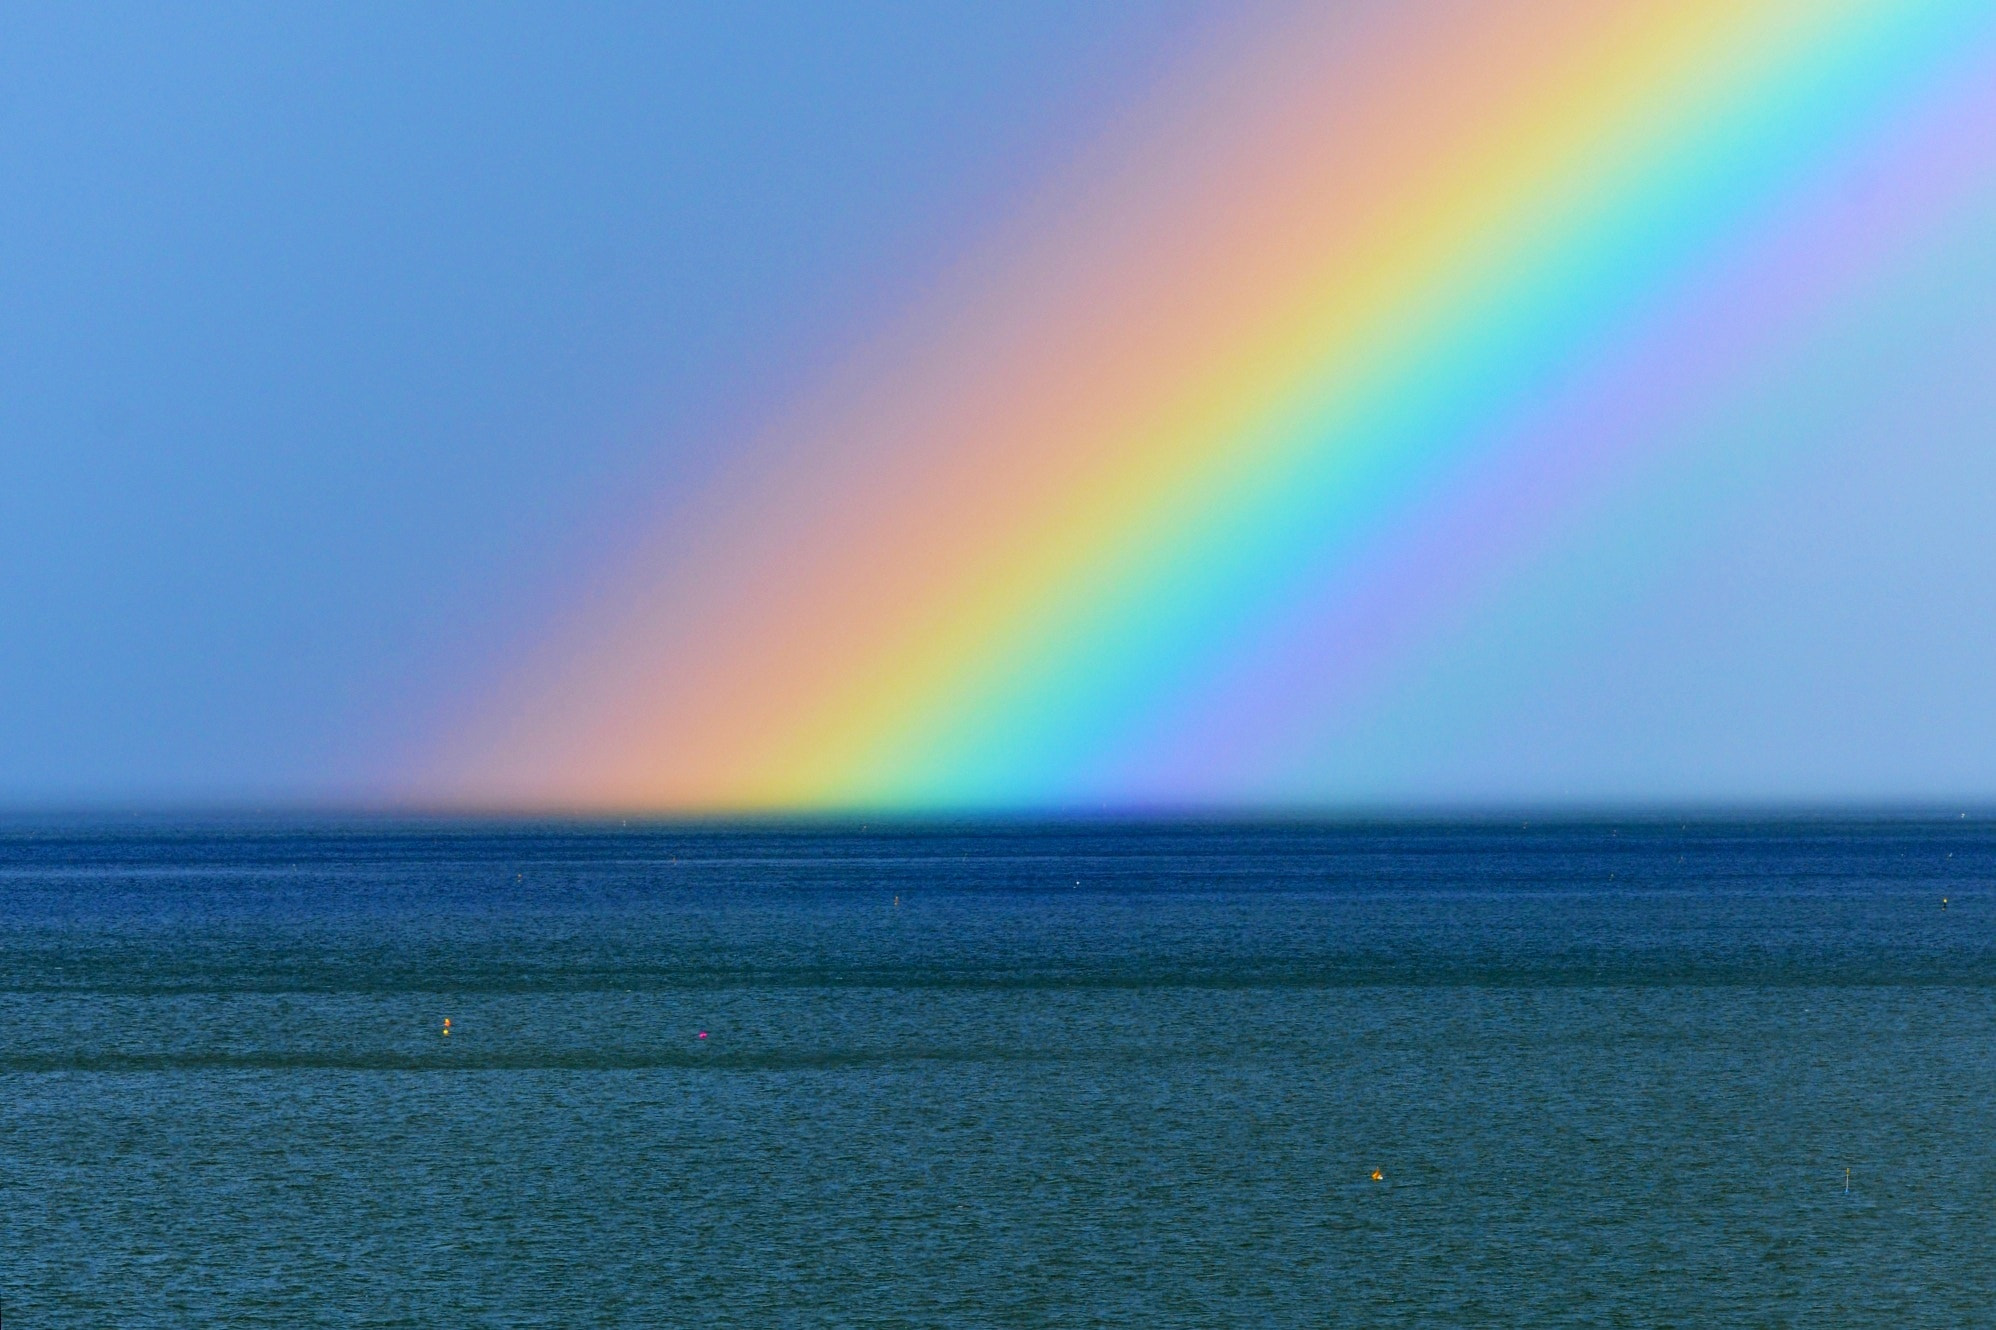 Photograph Rainbow by Vincent Cecchetti on 500px